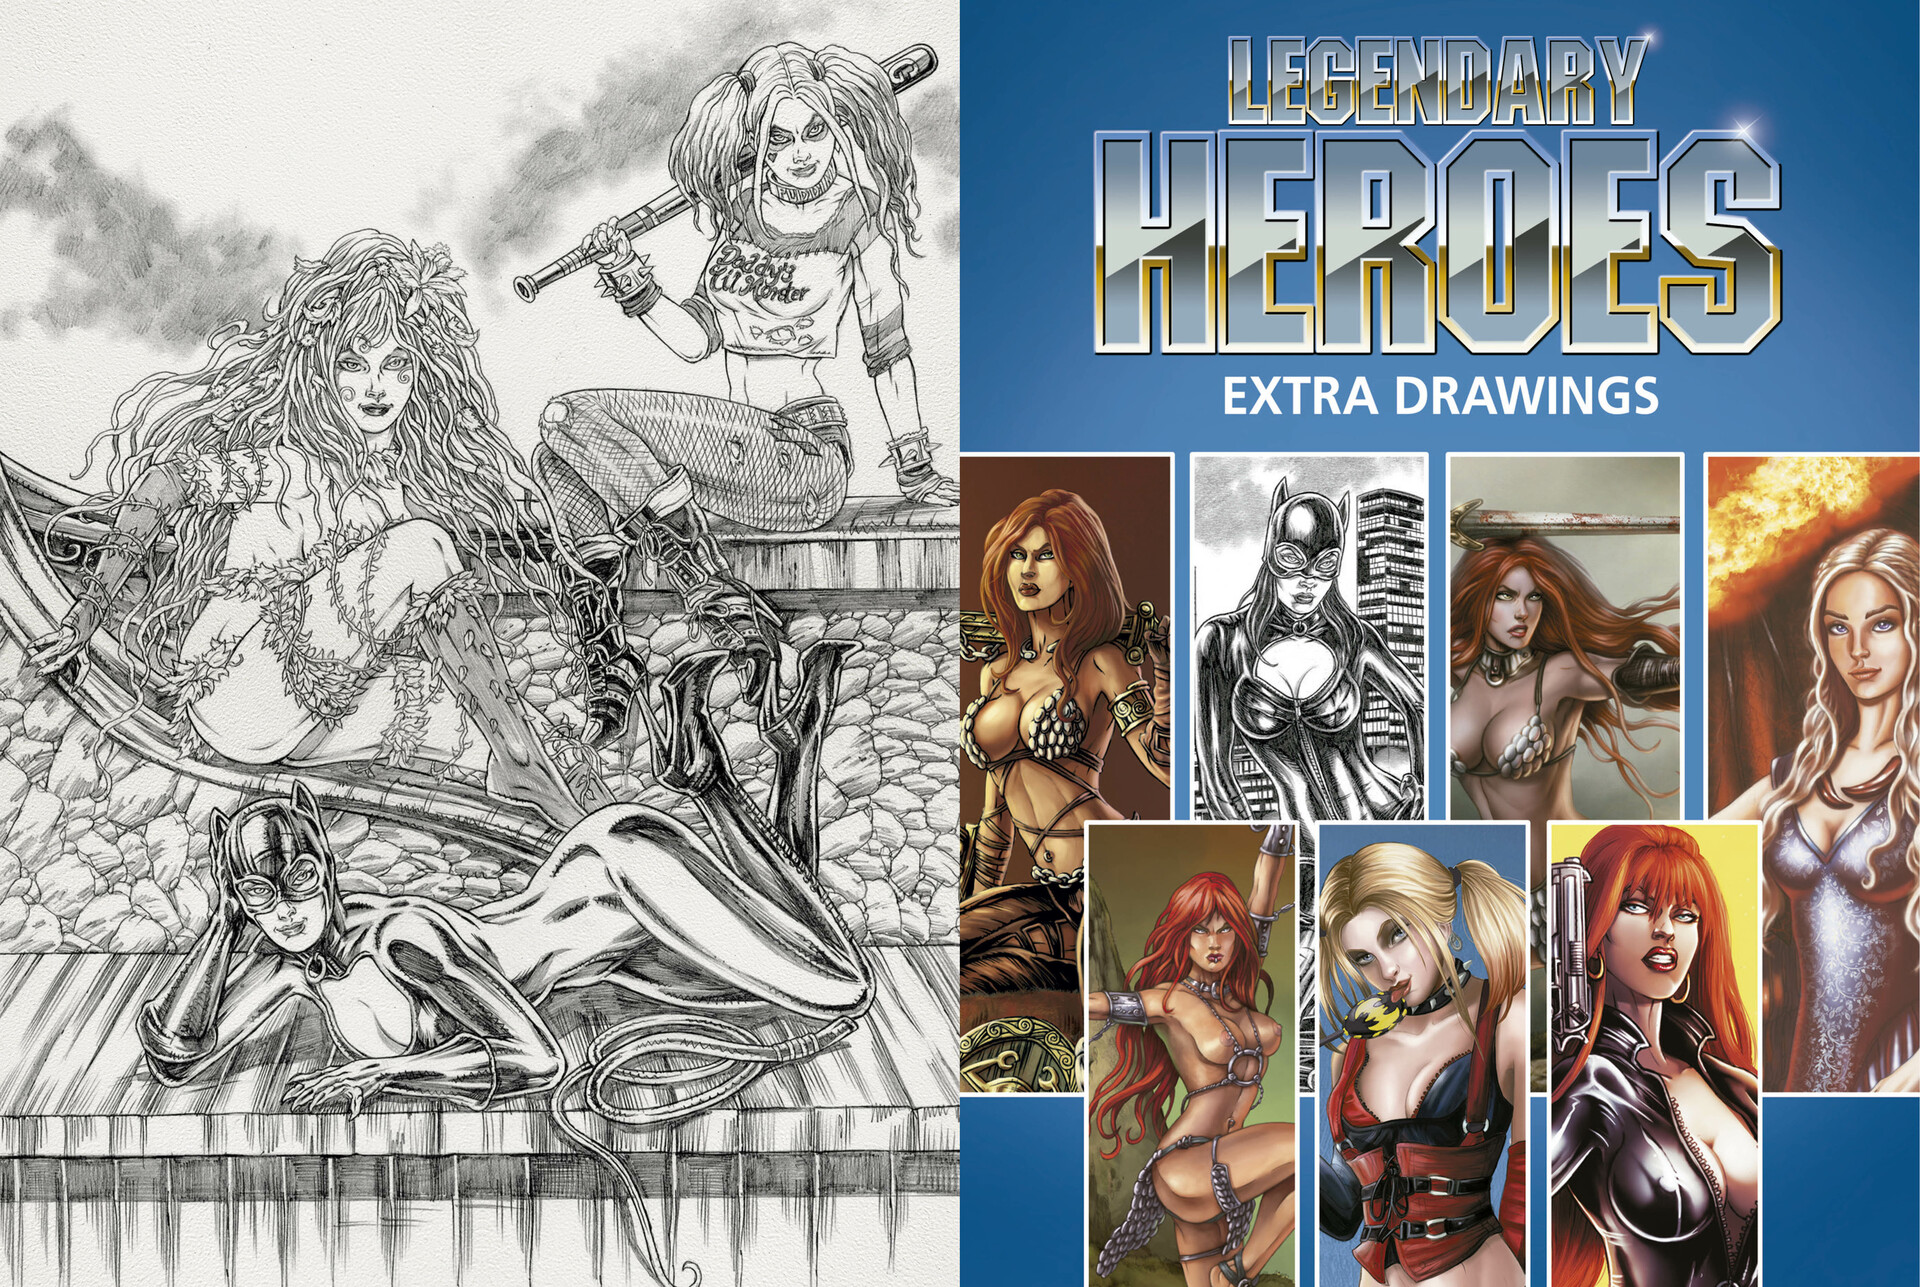 Mike ratera lh artbook p88 p89